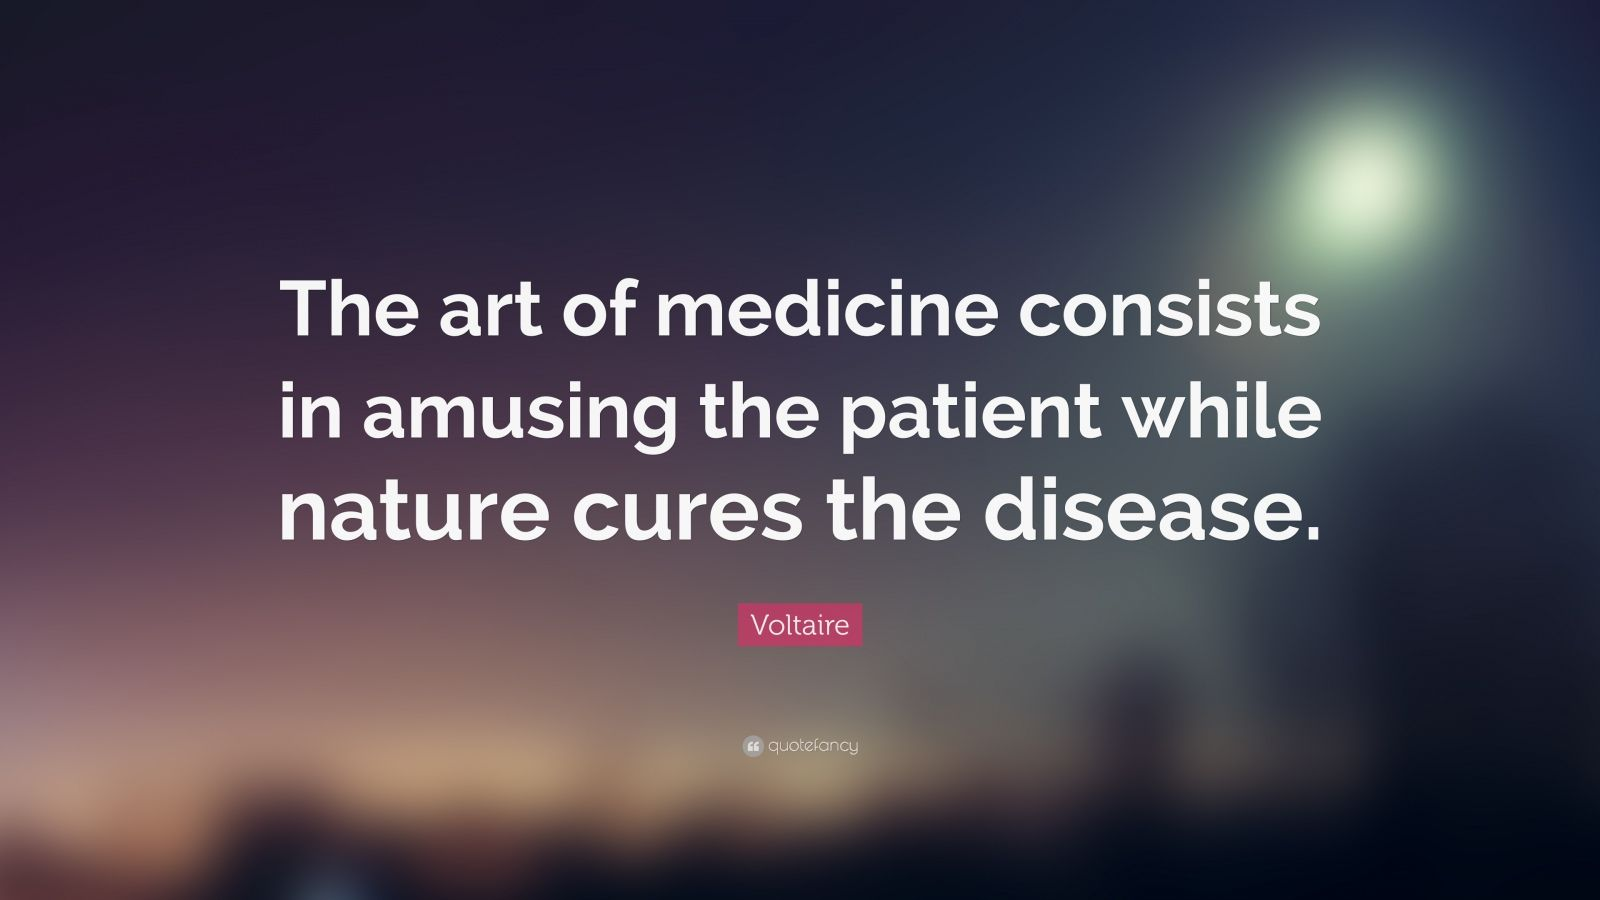 John Lennon Wallpaper Quotes Voltaire Quote The Art Of Medicine Consists In Amusing